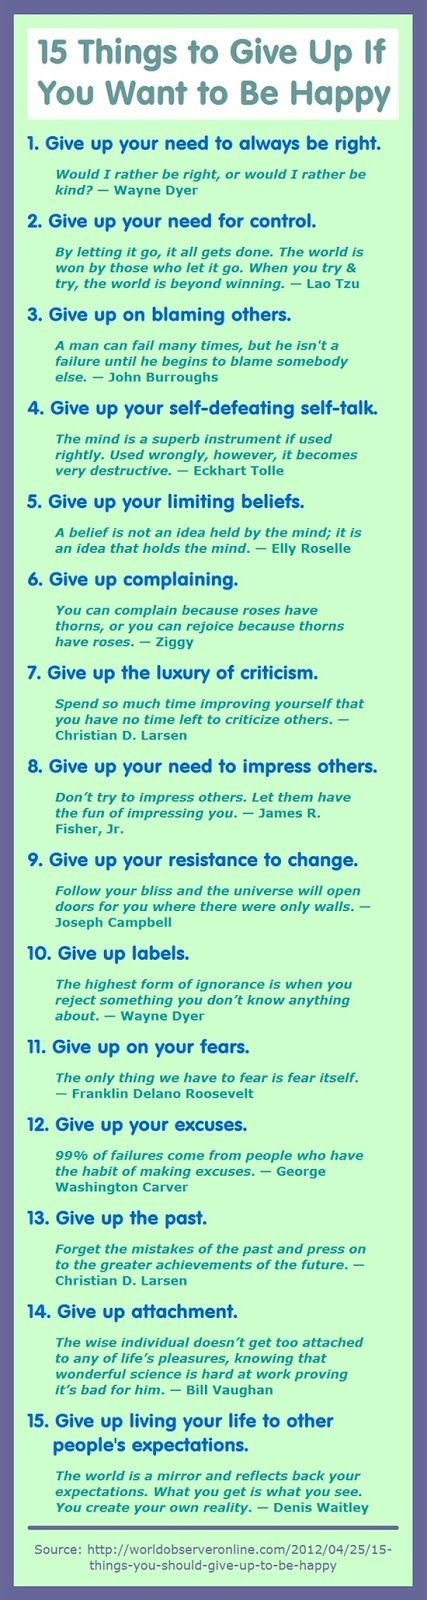 Love this List! 15 Things You Need to Give Up if You Want to Be Happy #Happiness #Happy #Quotes #Words #Sayings #Life #Inspiration